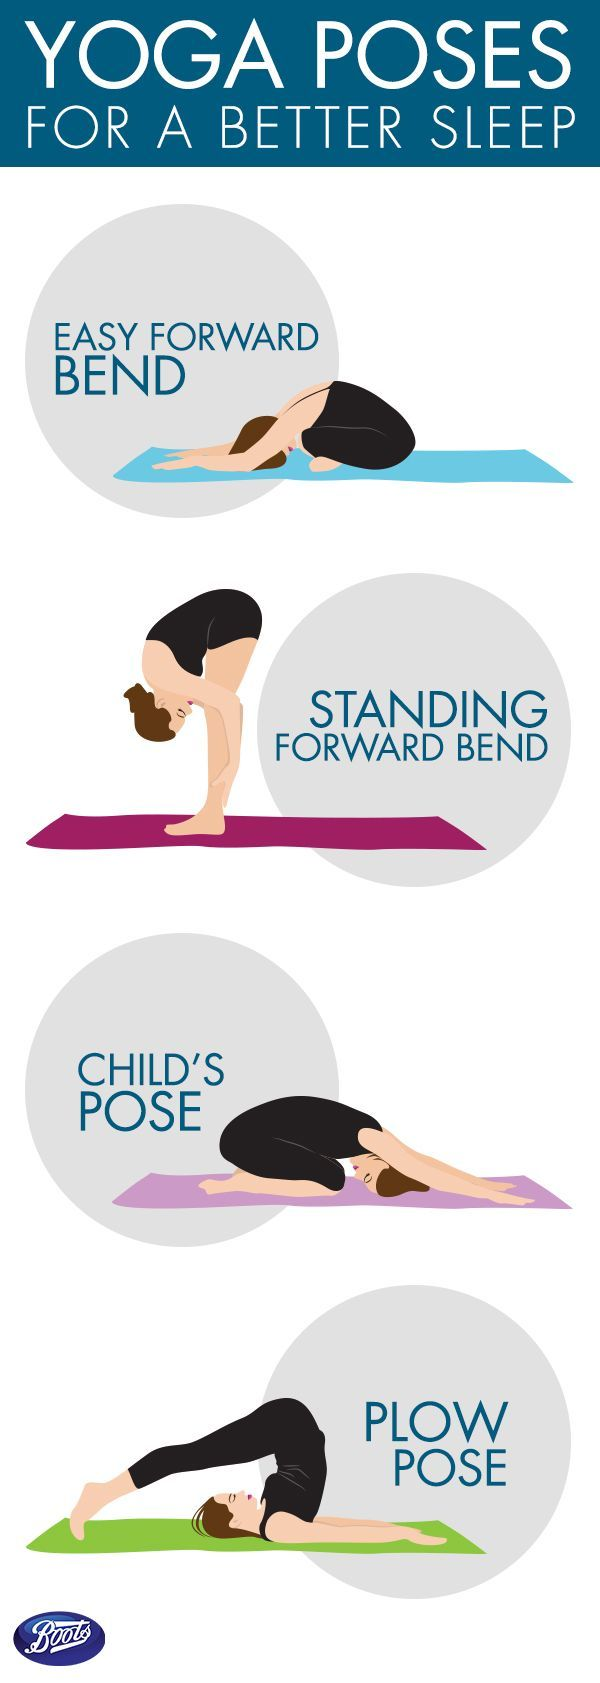 Have trouble falling asleep? Here are 4 simple yoga poses to help you sleep turn off your brain before